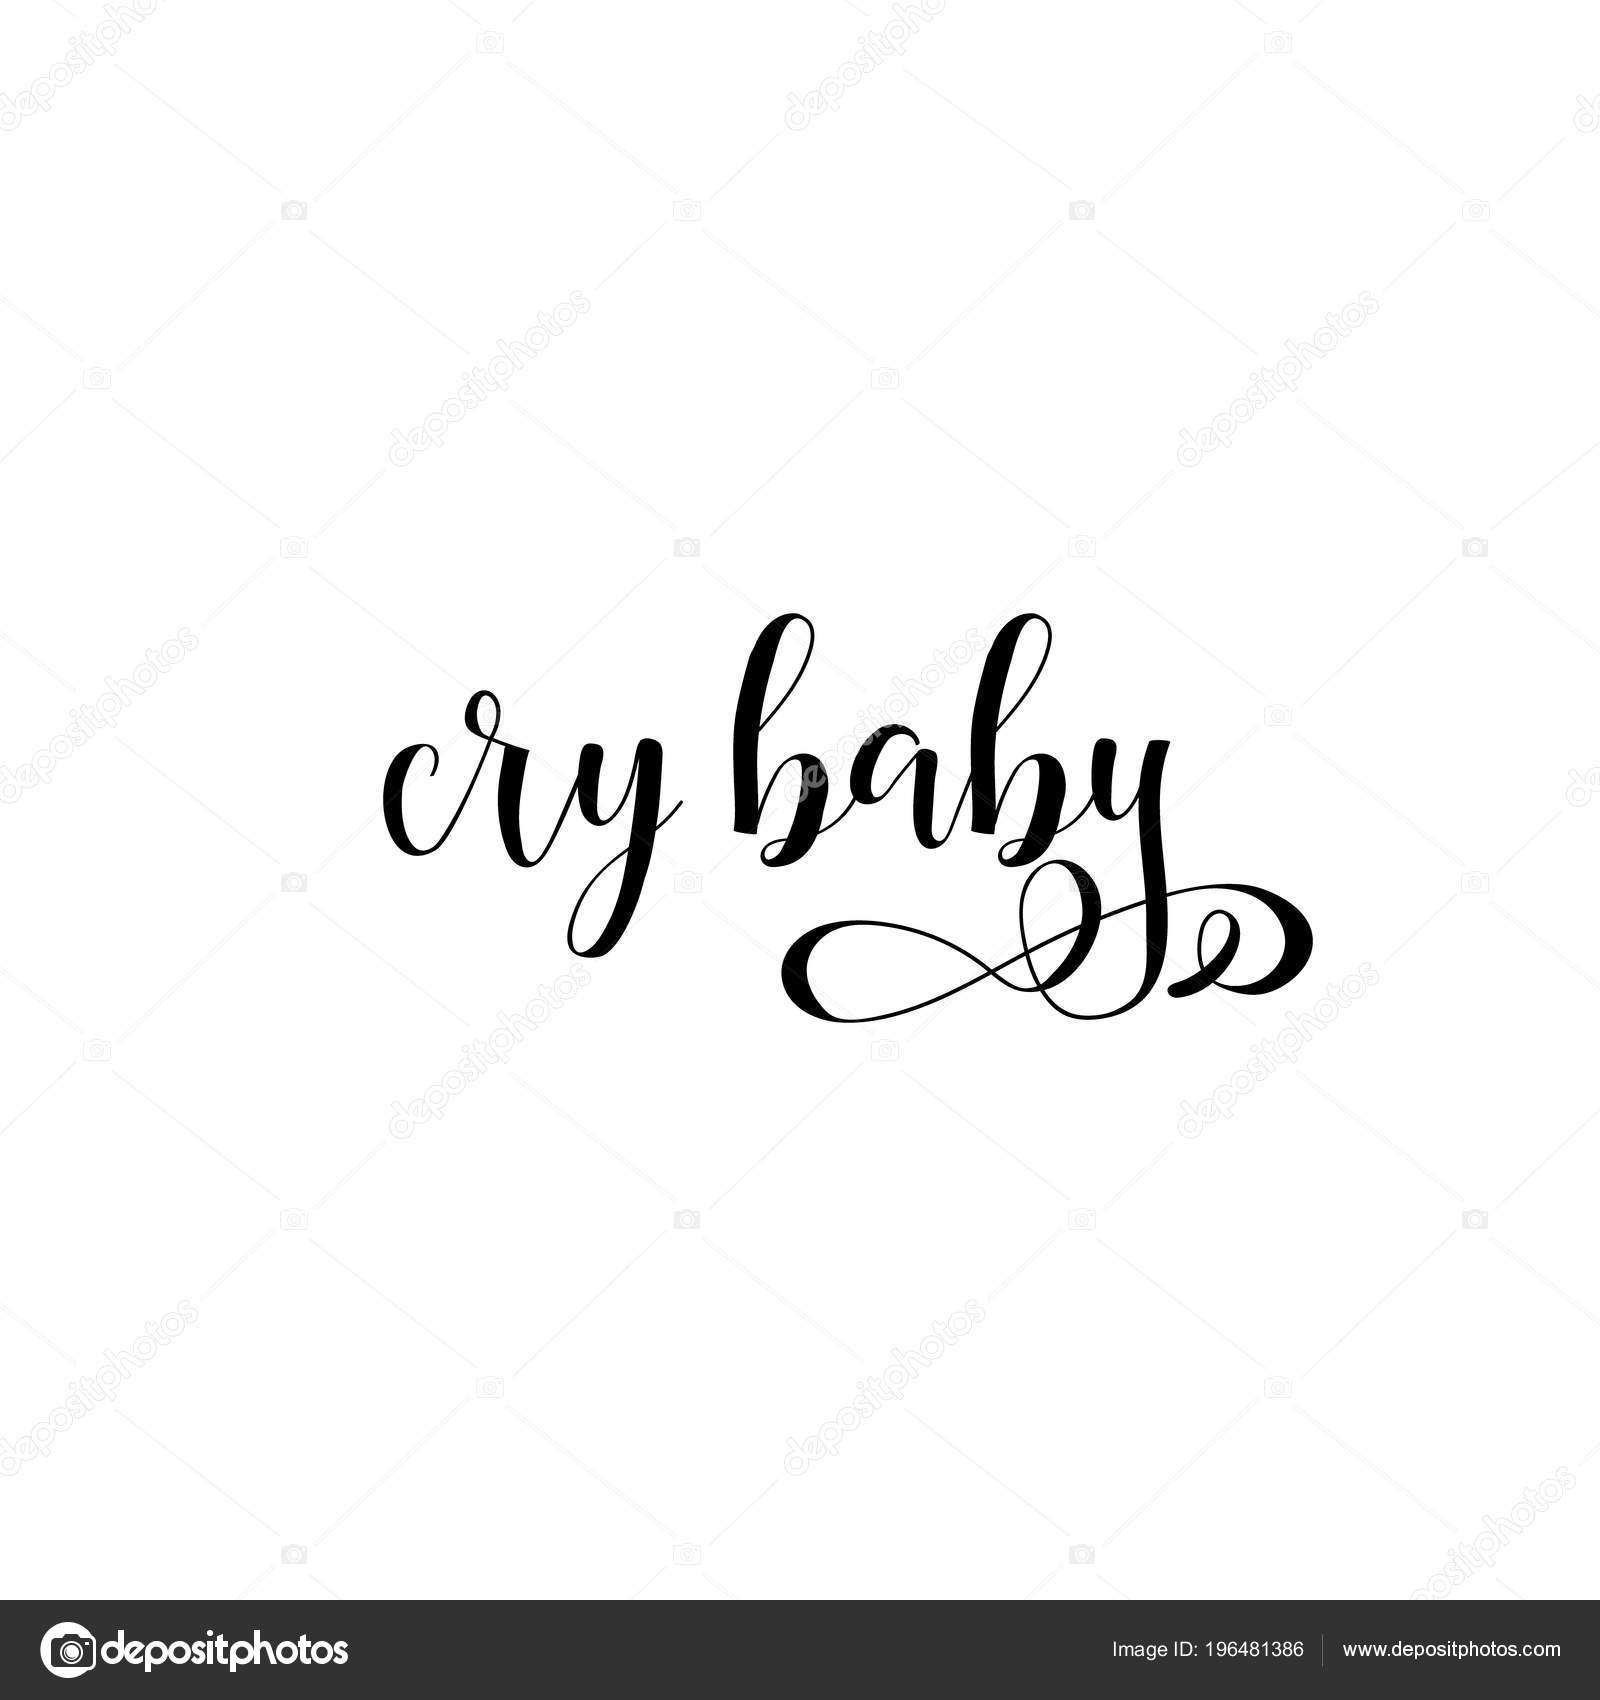 Cry Baby Lettering Can Used Prints Bags Shirts Home Decor U2014 Stock Vector